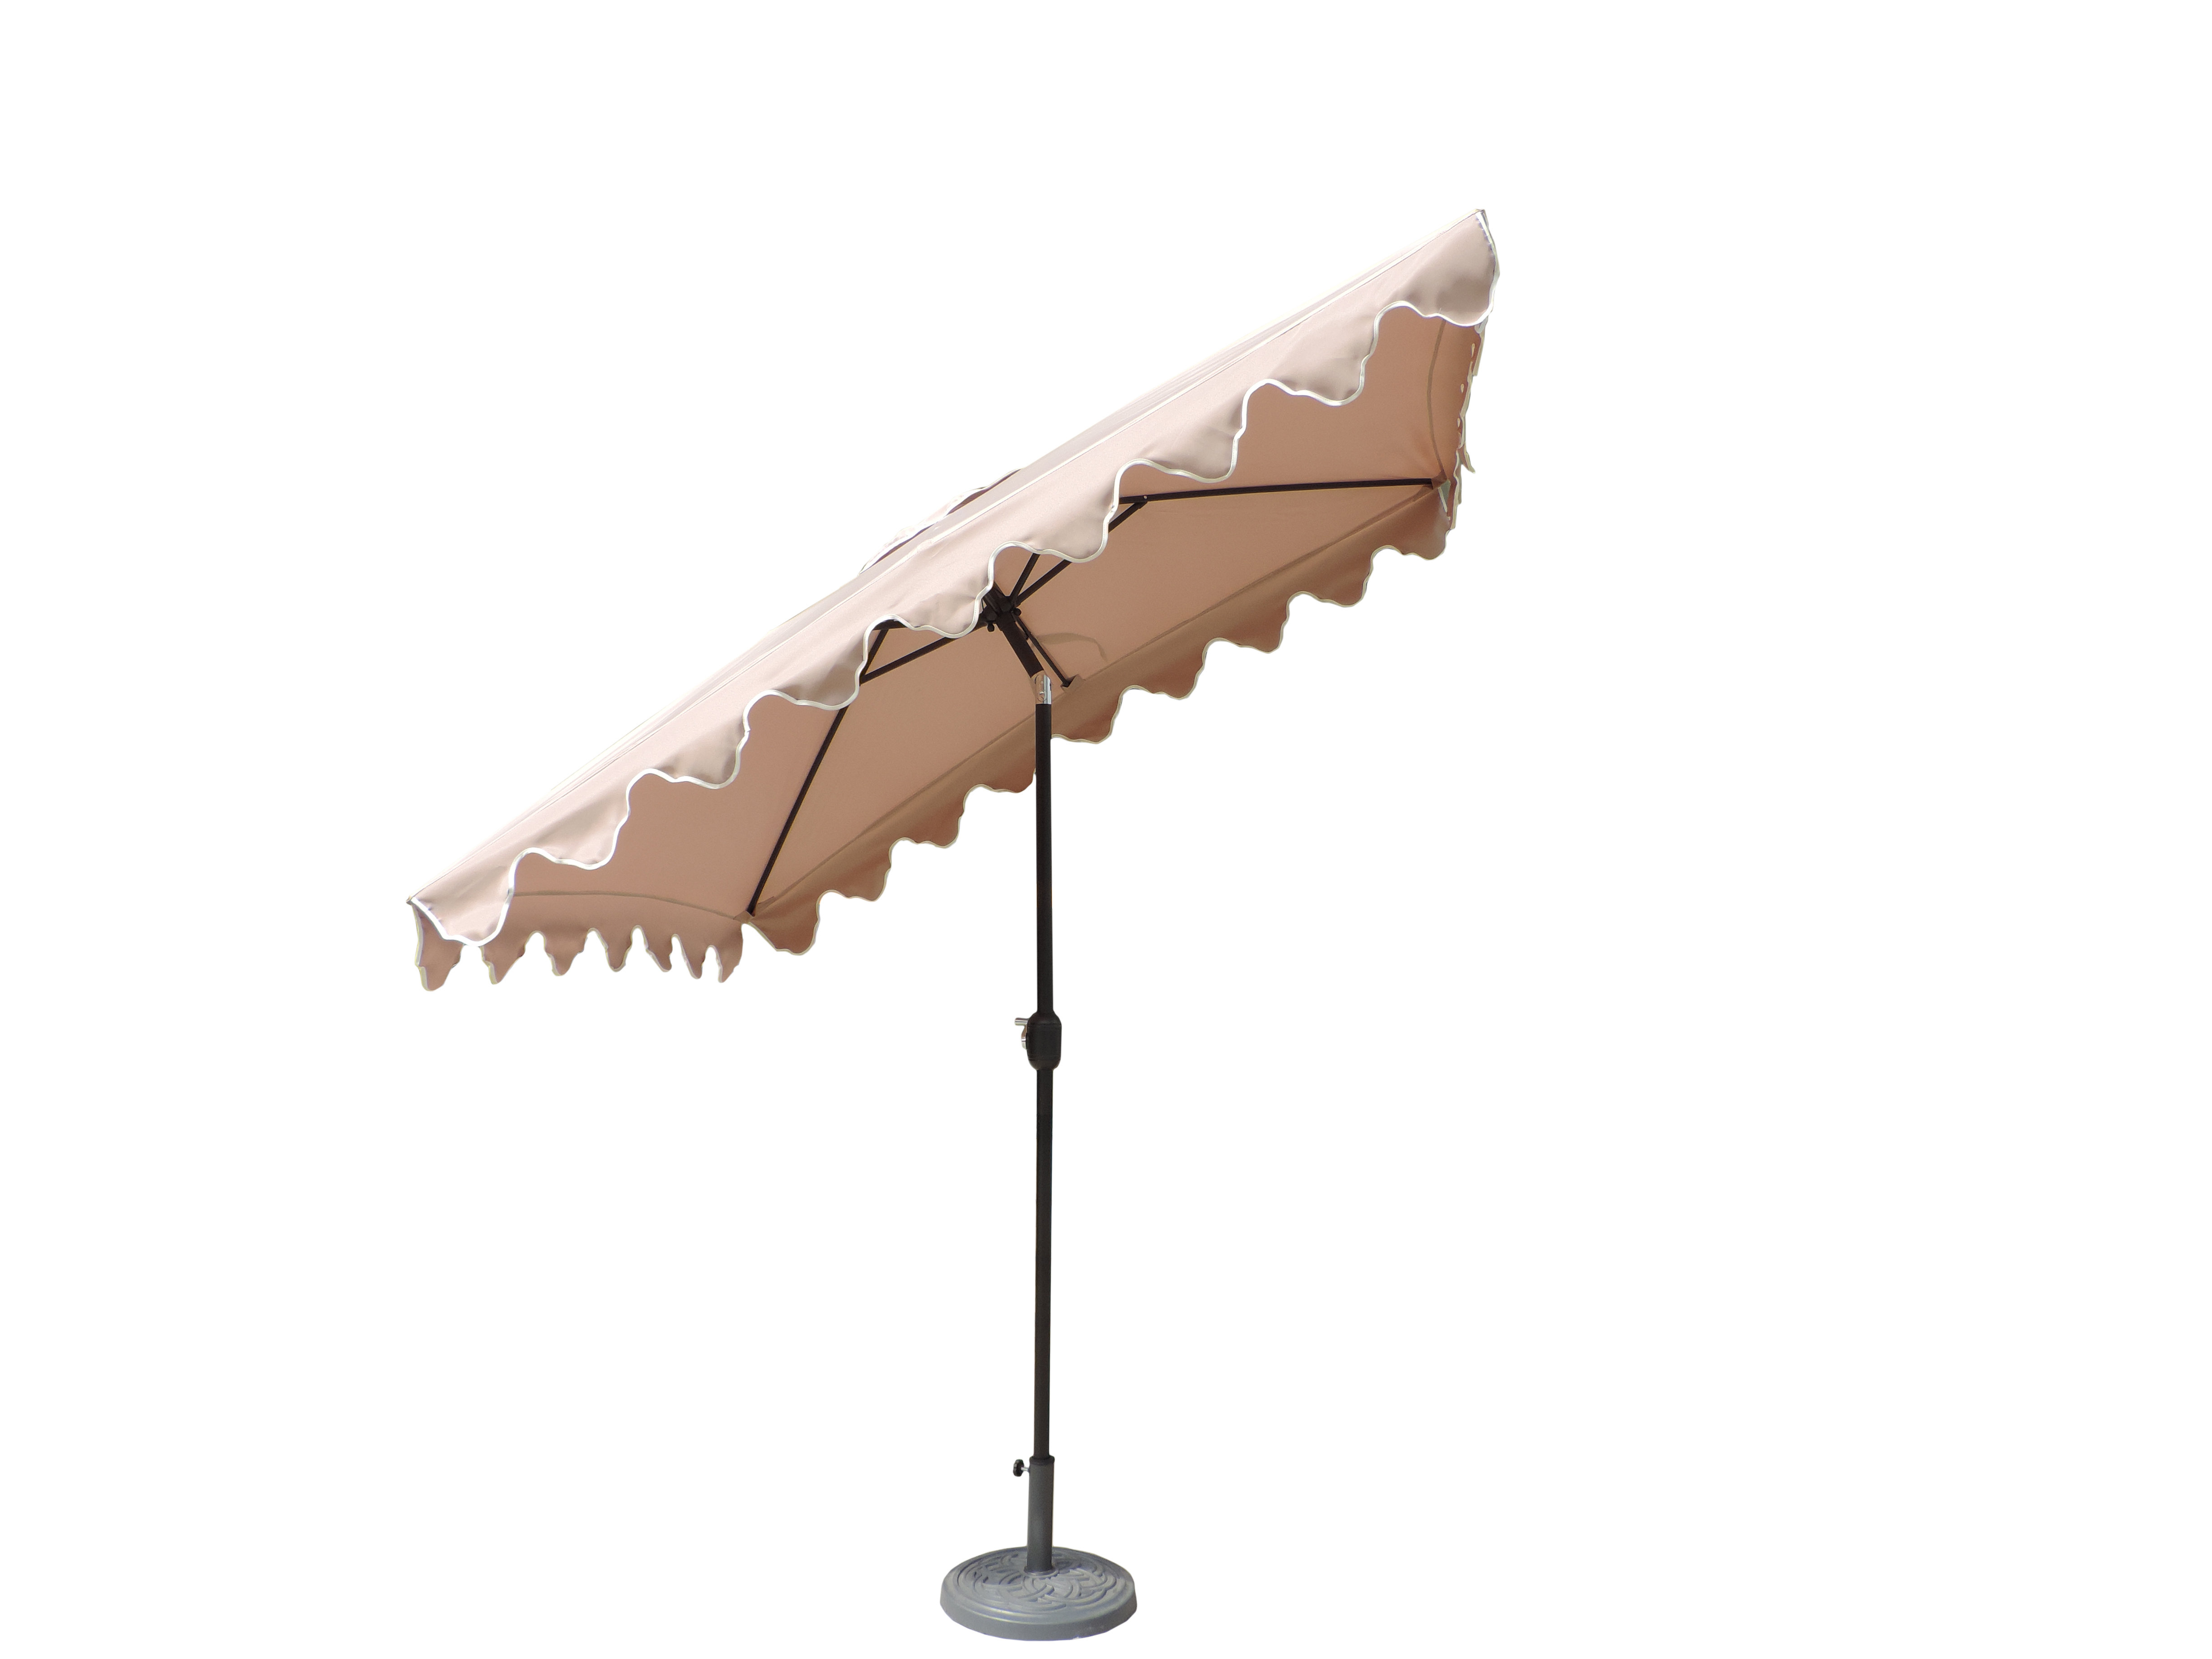 Lonoke Patio Rectangular Market Umbrellas For Popular Lonoke Patio 8' X 6' Rectangular Market Umbrella (Gallery 1 of 20)